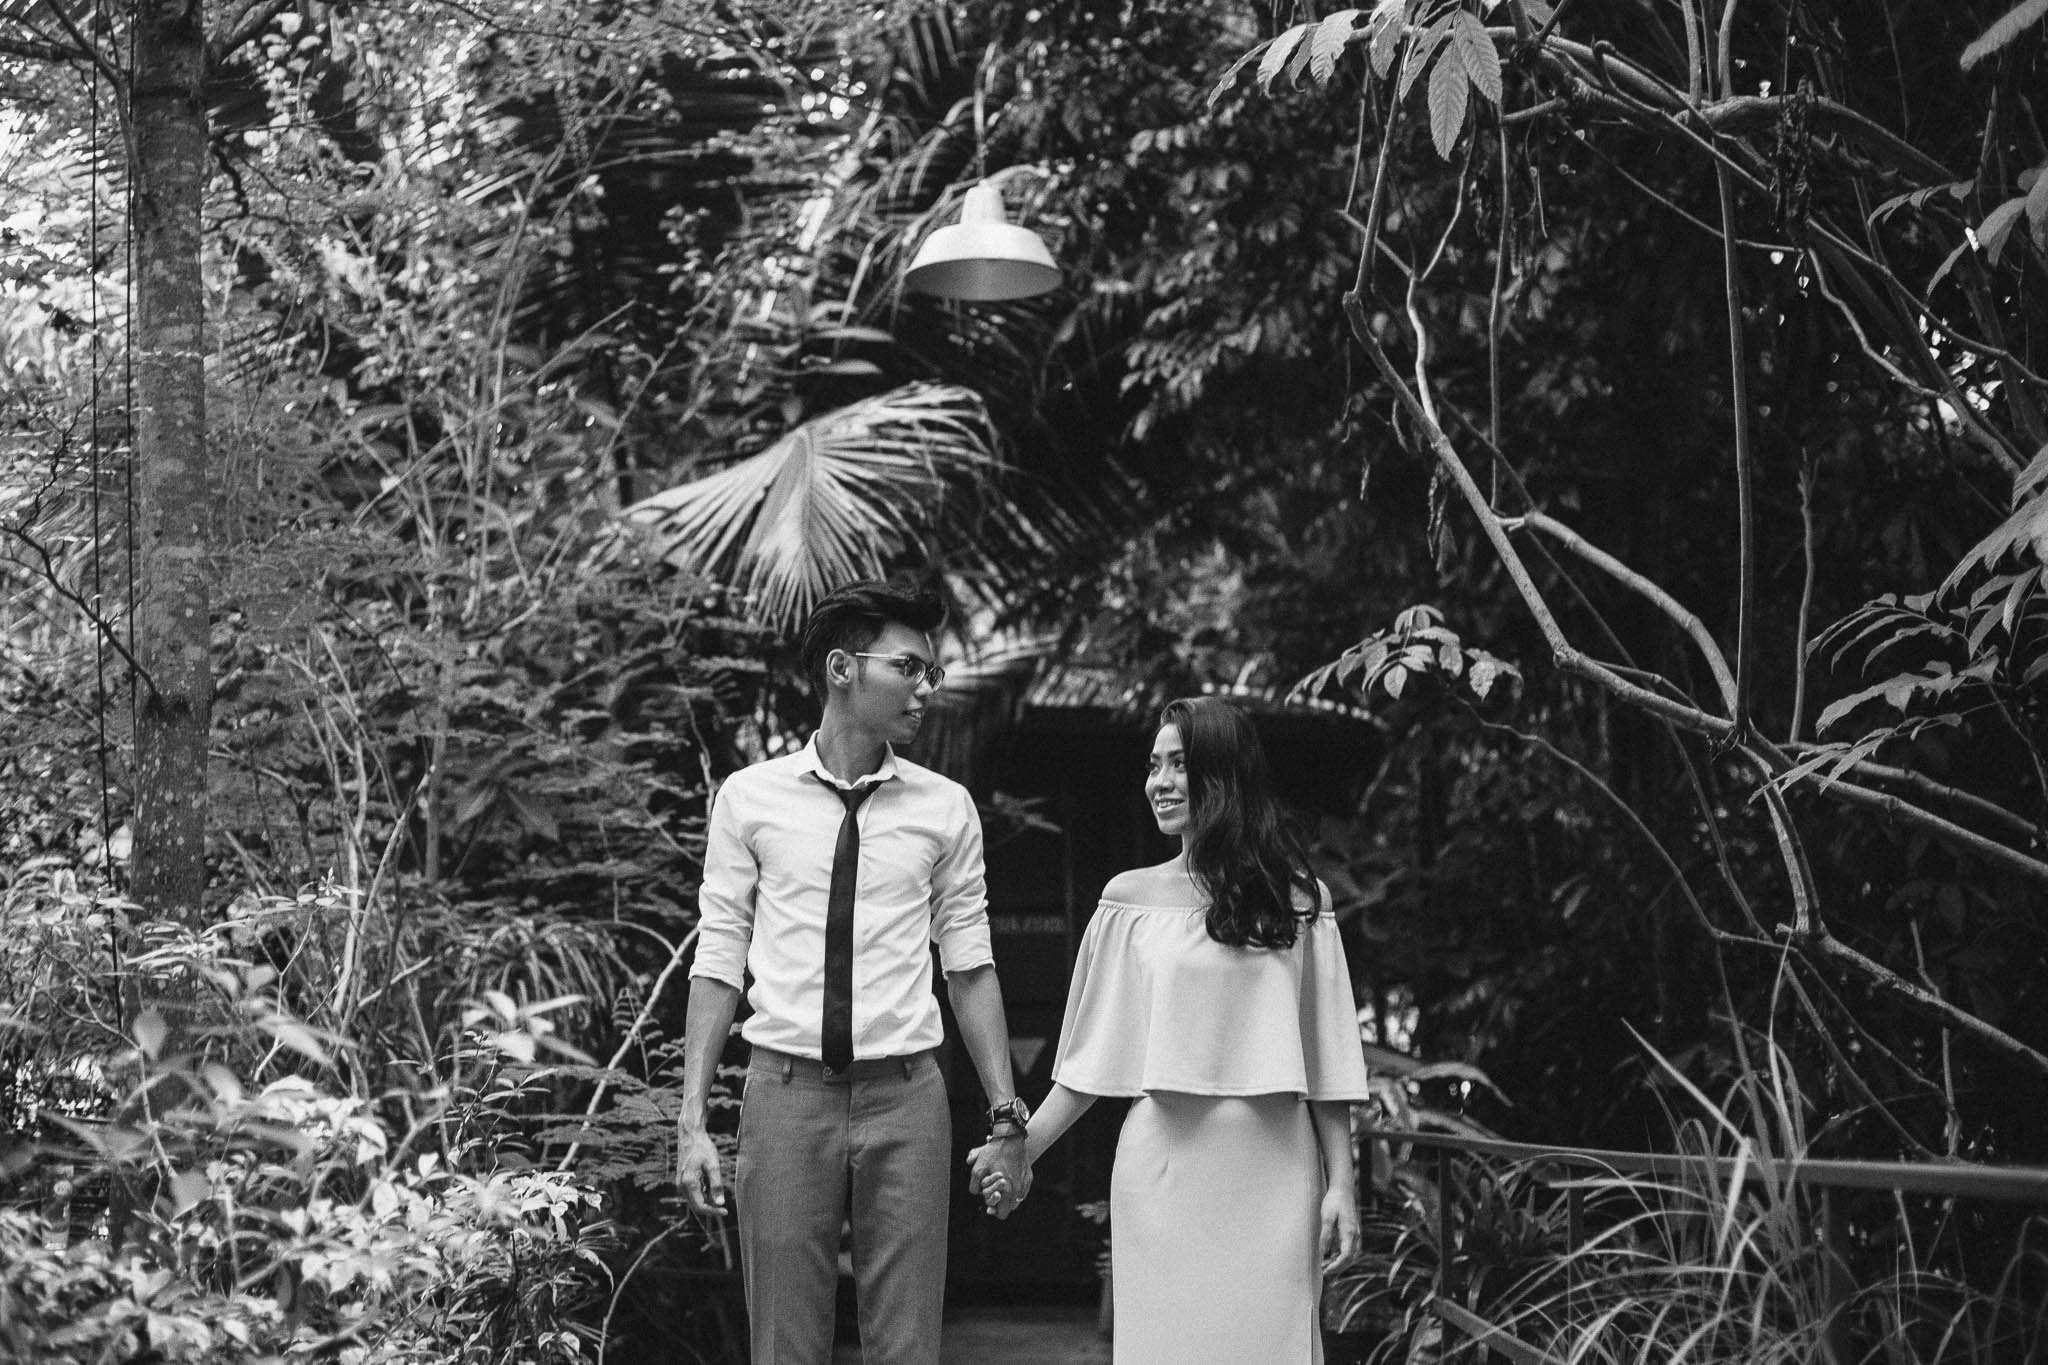 singapore-wedding-photographer-malay-travel-adli-tashah-41.jpg